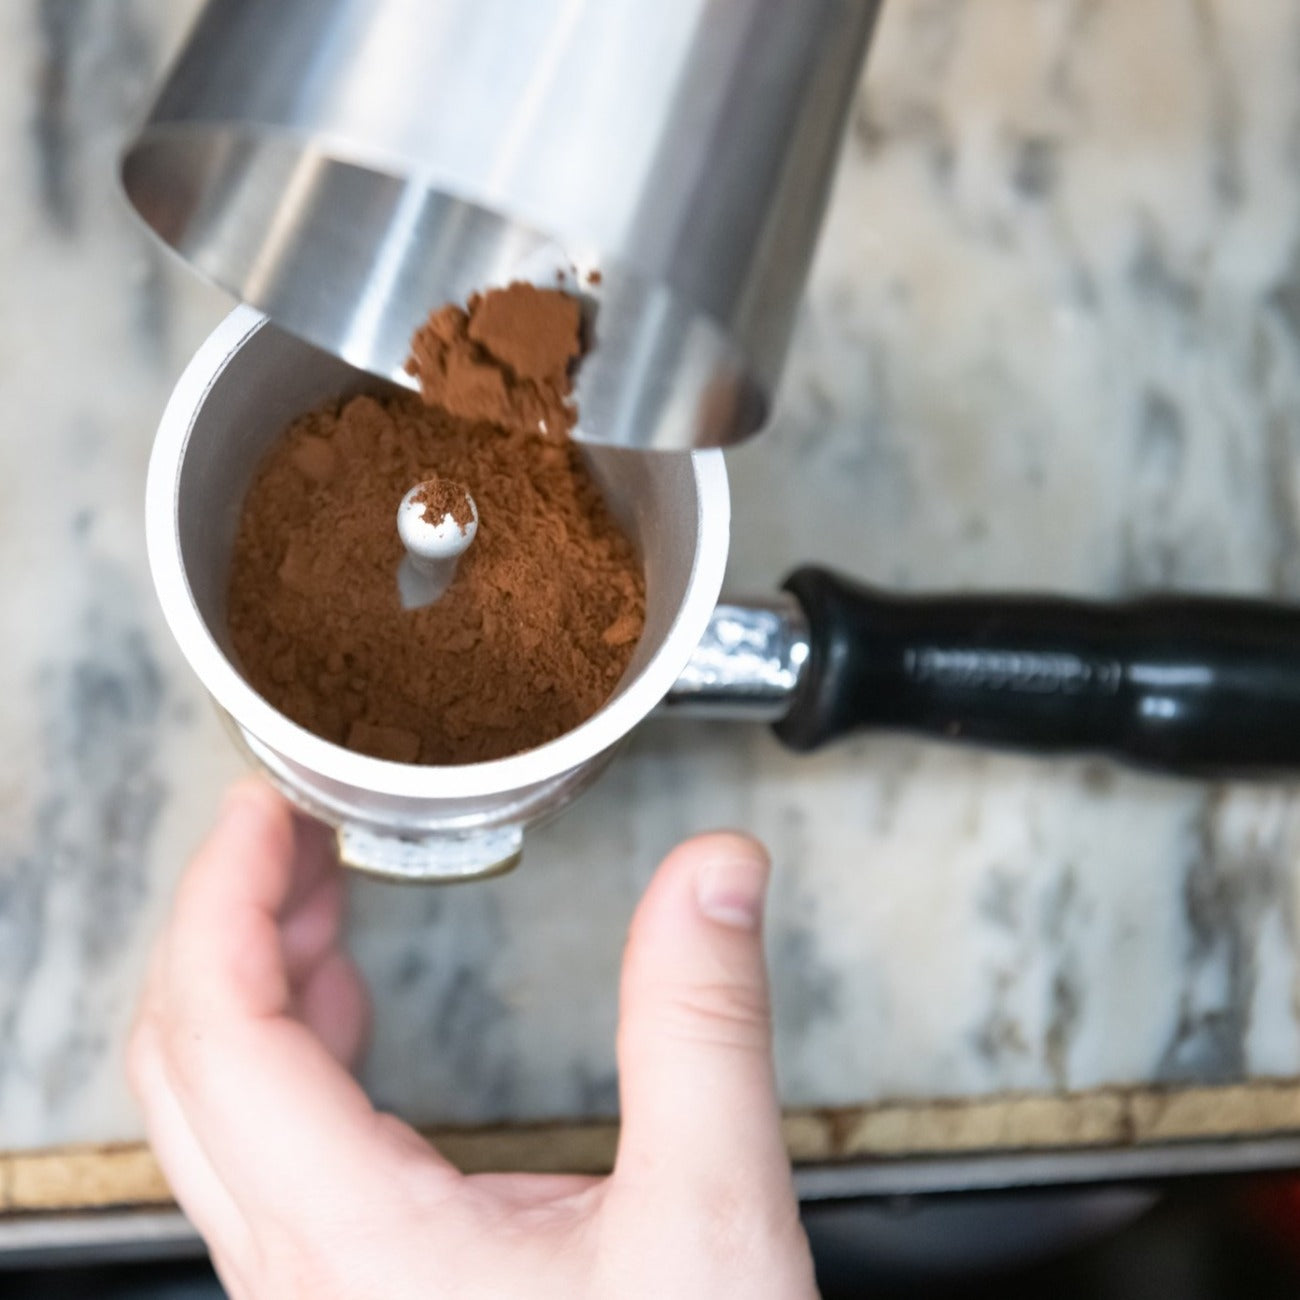 Online Class - Livestream Latte Prep: Become an Espress-PRO - Sunday, June 28th at 11:00am